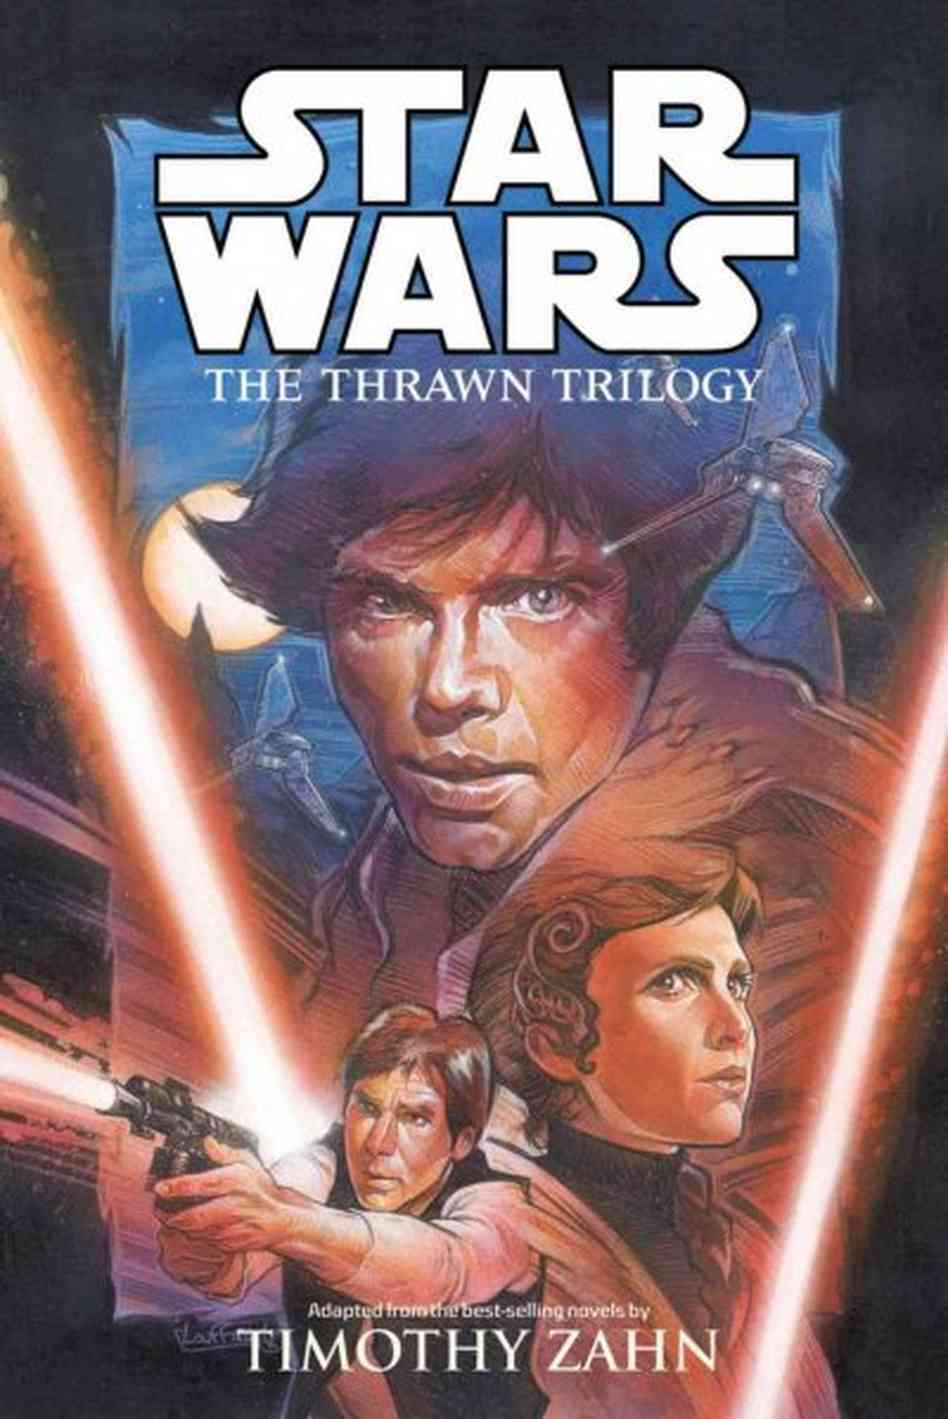 Star Wars: The Thrawn Trilogy (Comic Hardcover)